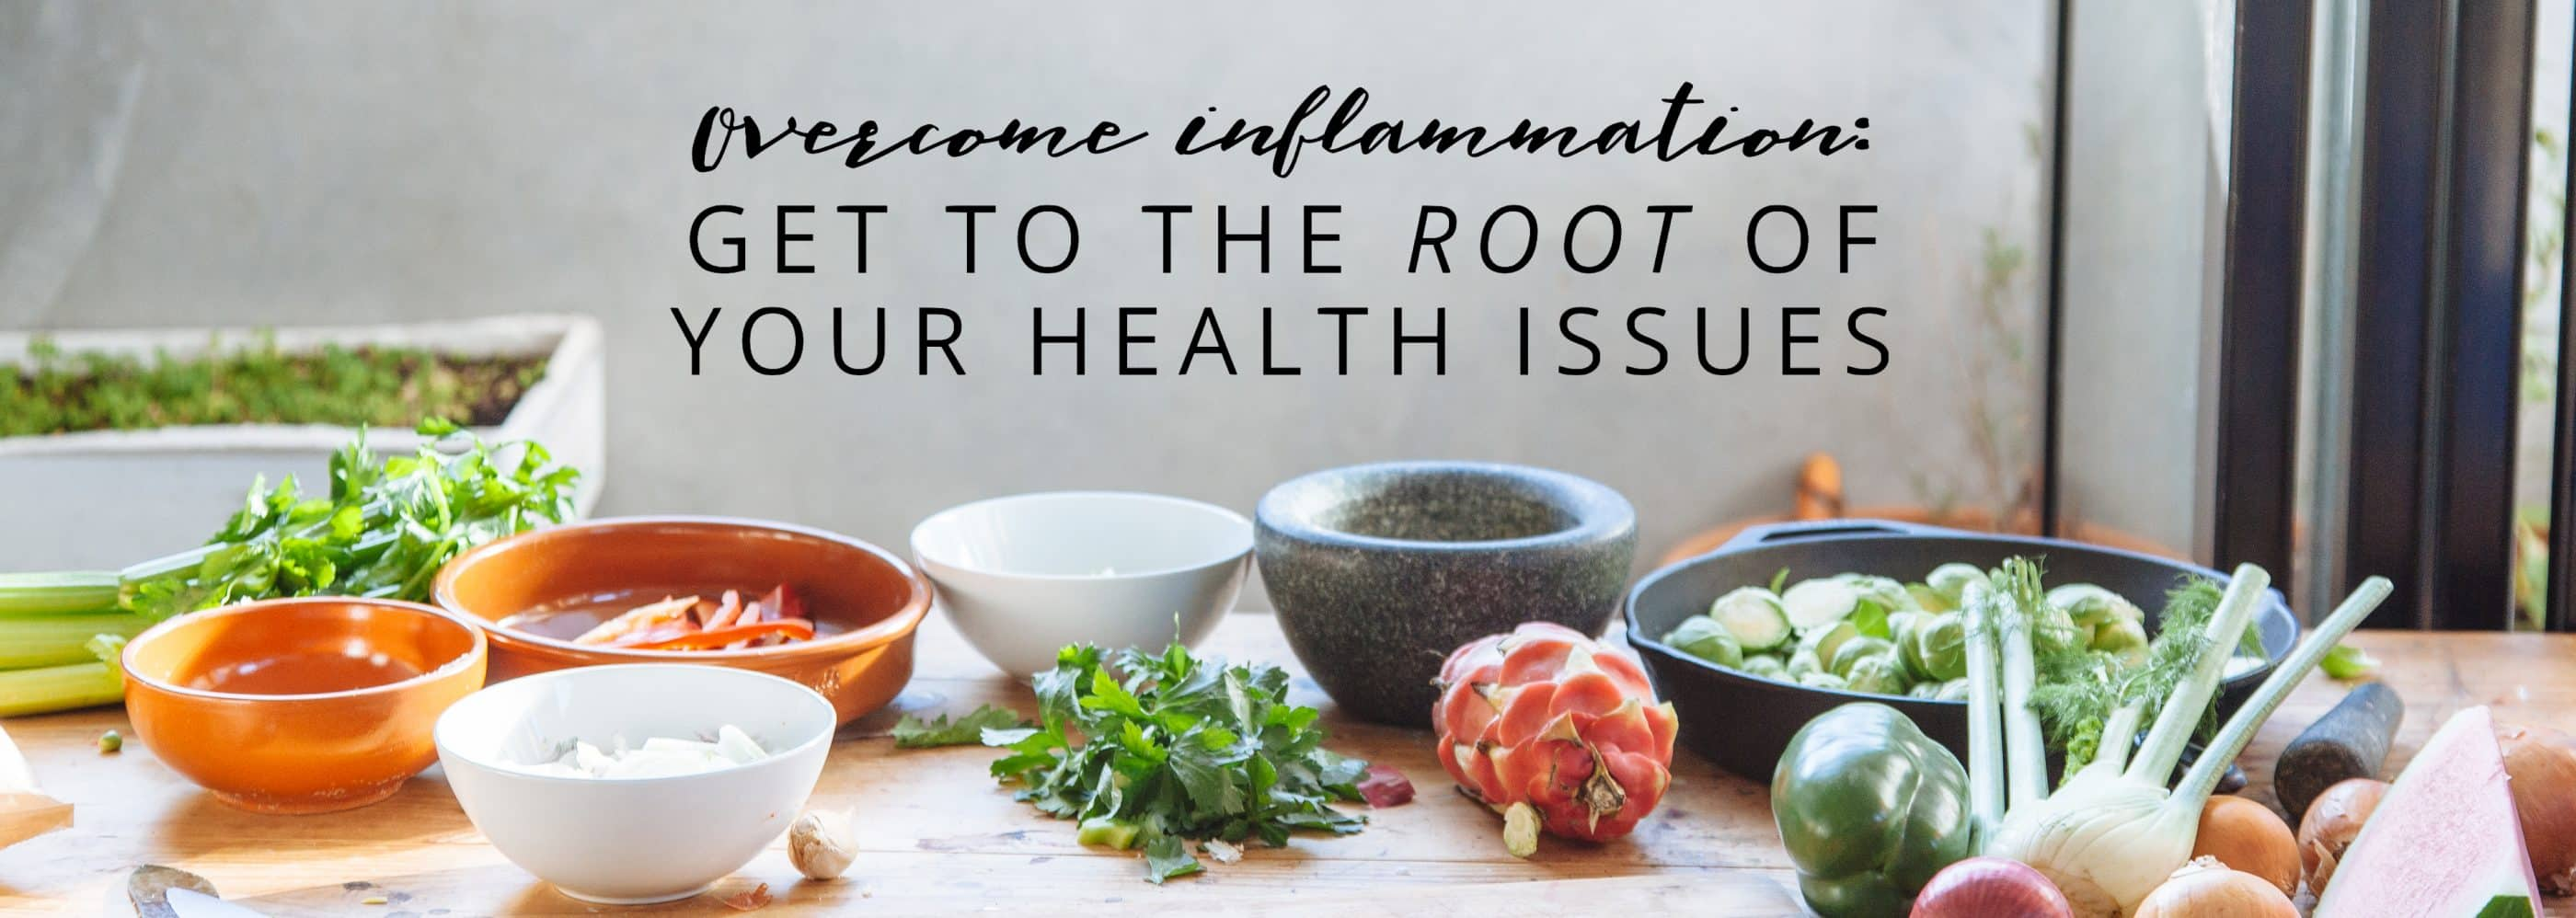 Overcome Inflammation: get to the root of your health issues with MRT testing and the LEAP program